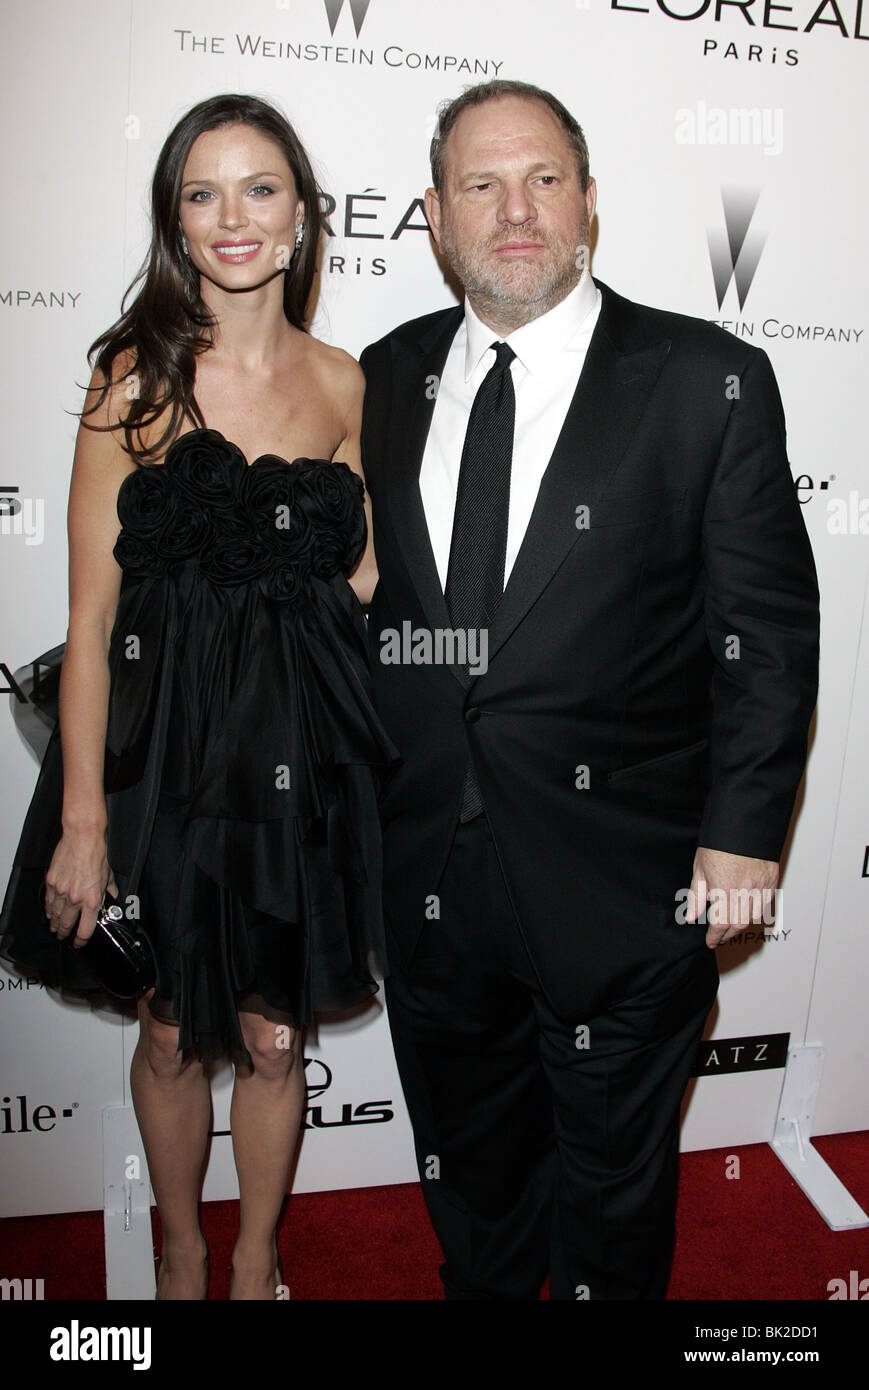 HARVEY WEINSTEIN THE WEINSTEIN COMPANYS 2007 GOLDEN GLOBES AFTER PARTY BEVERLY HILLS HOTEL BEVERLY HILLS LOS ANGELES - Stock Image